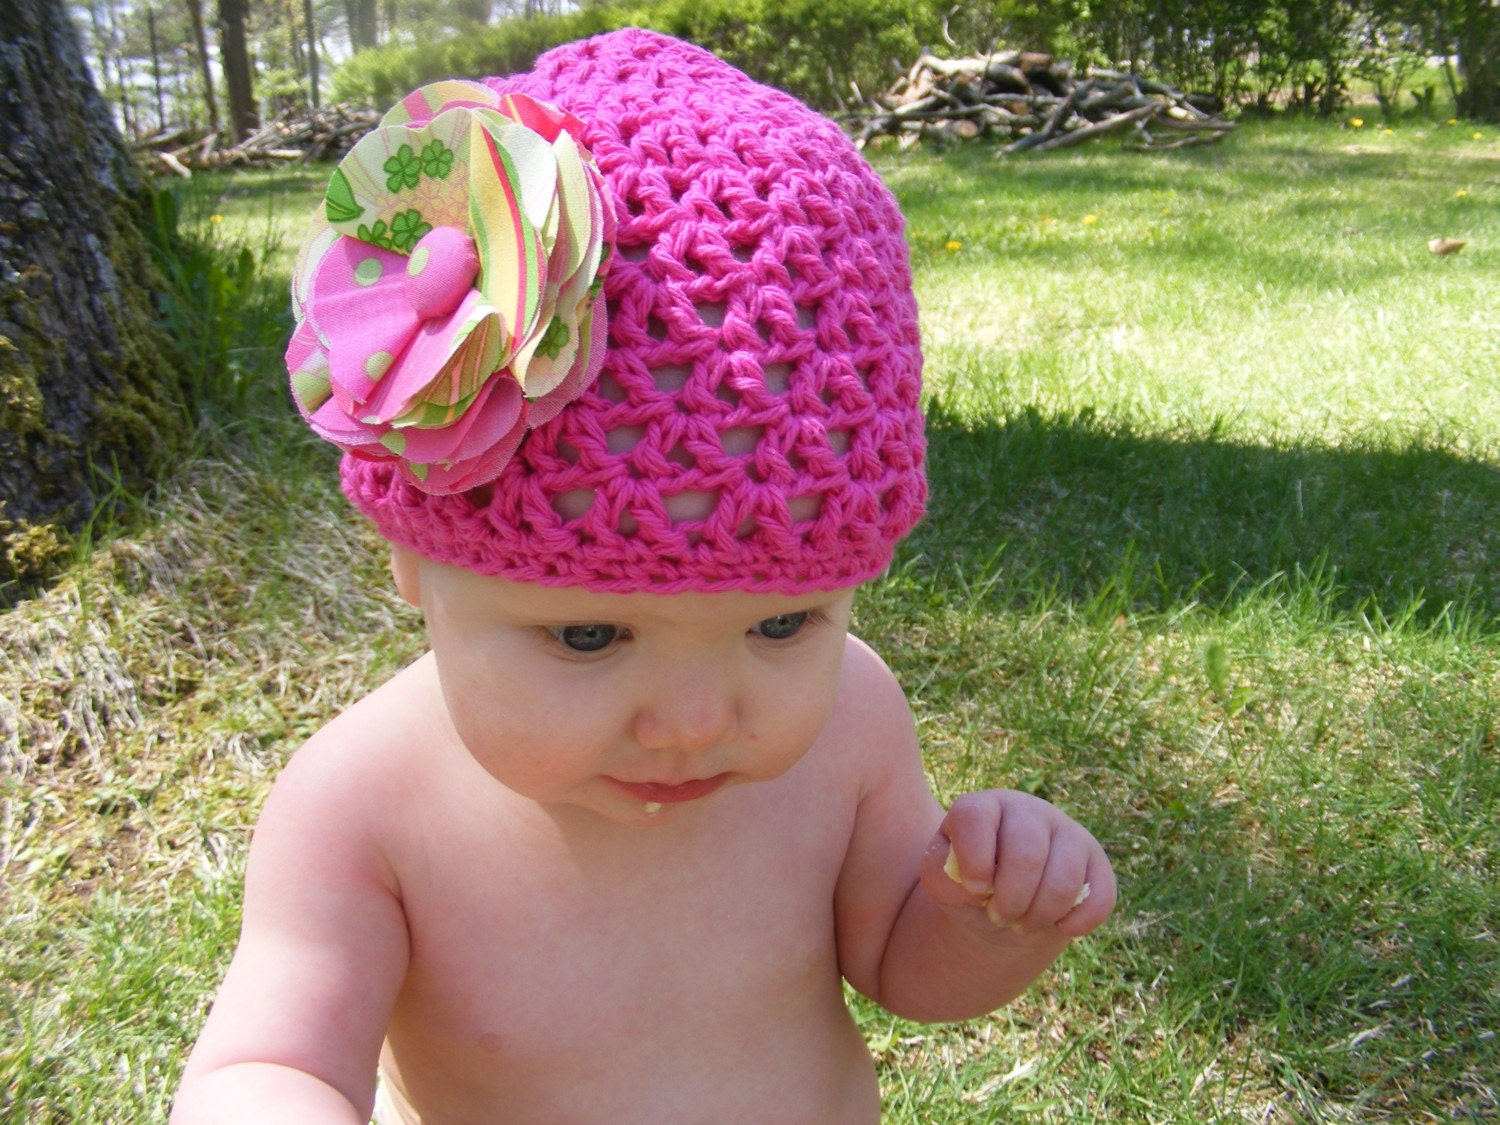 Great Deal 2 Interchangeable flower clips, one hat, and one headband 12-24 months